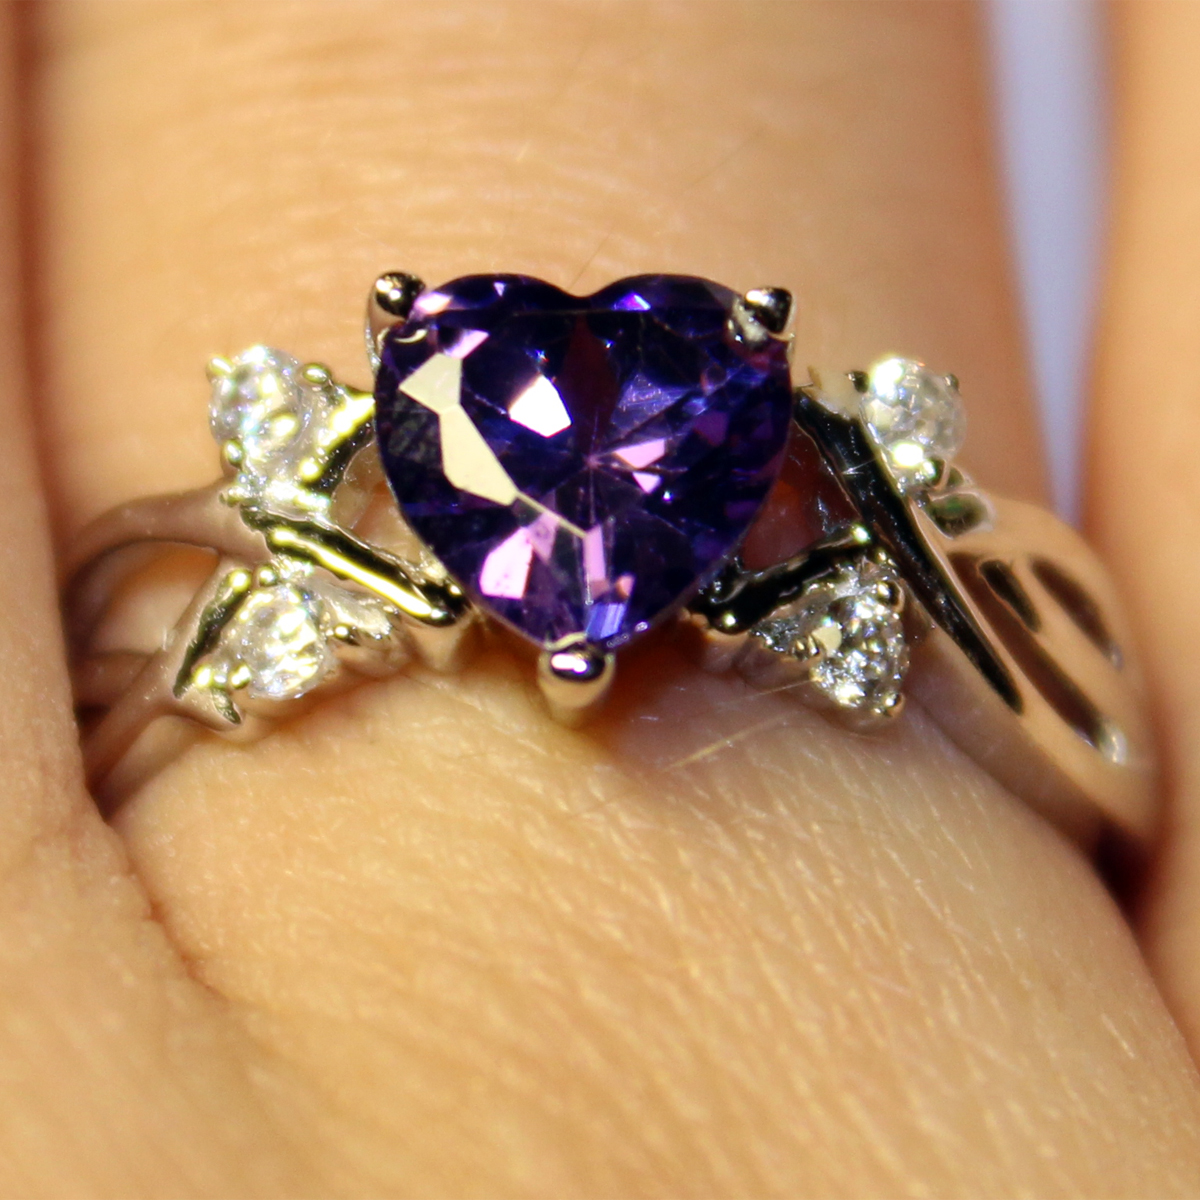 rings amethyst free purple jewelry wedding images wallpapers pin top hd heart